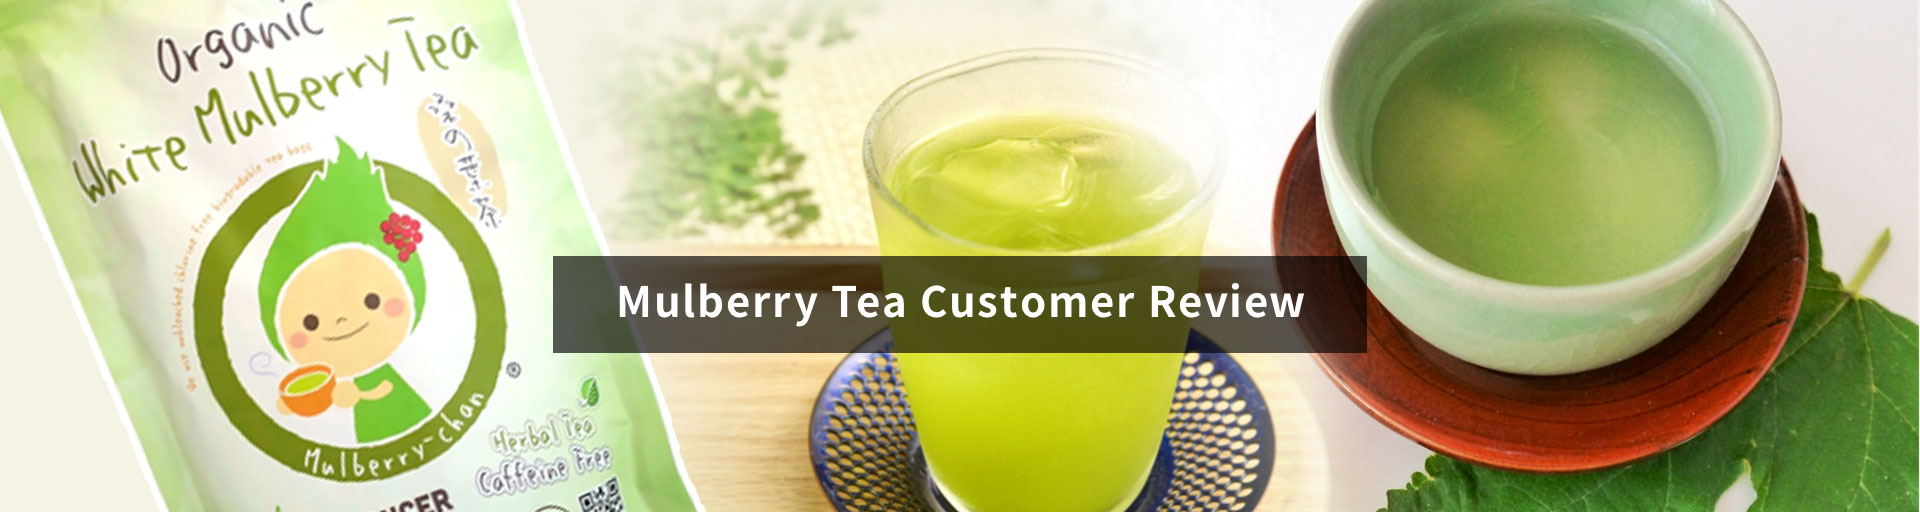 Mulberry Tea Customer Review